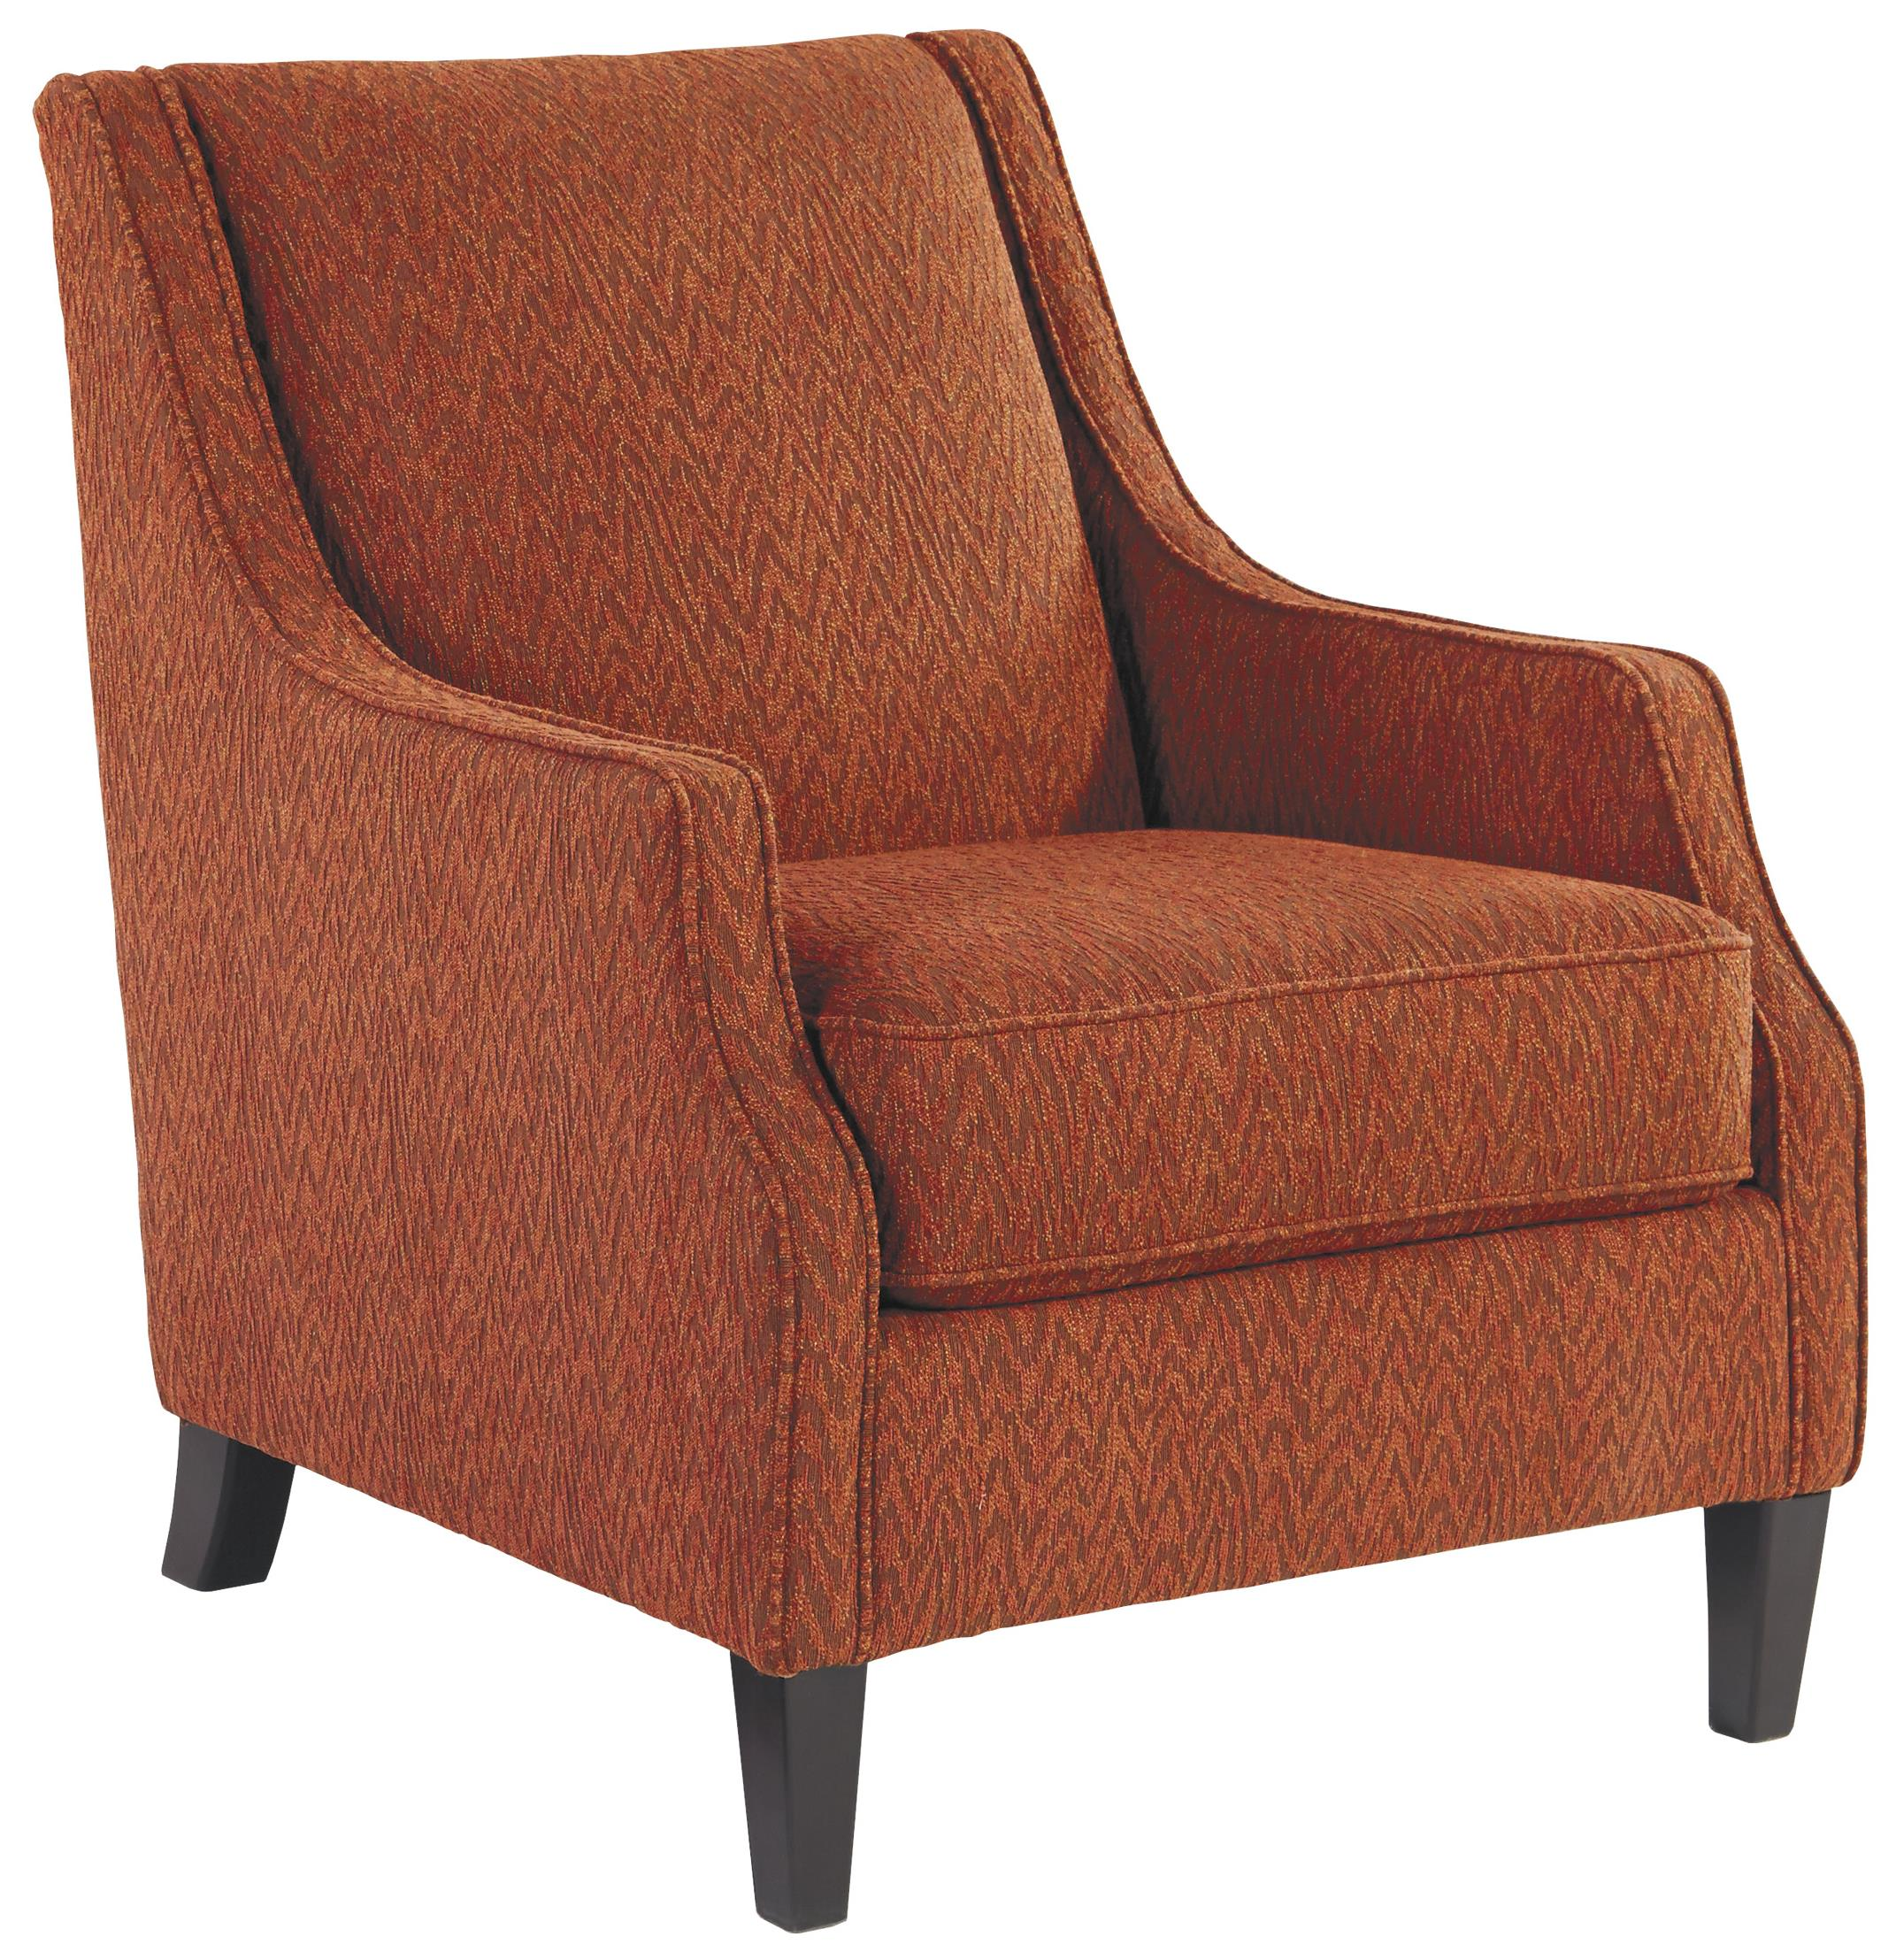 Signature Design by Ashley Elnora Accent Chair - Item Number: 9370222